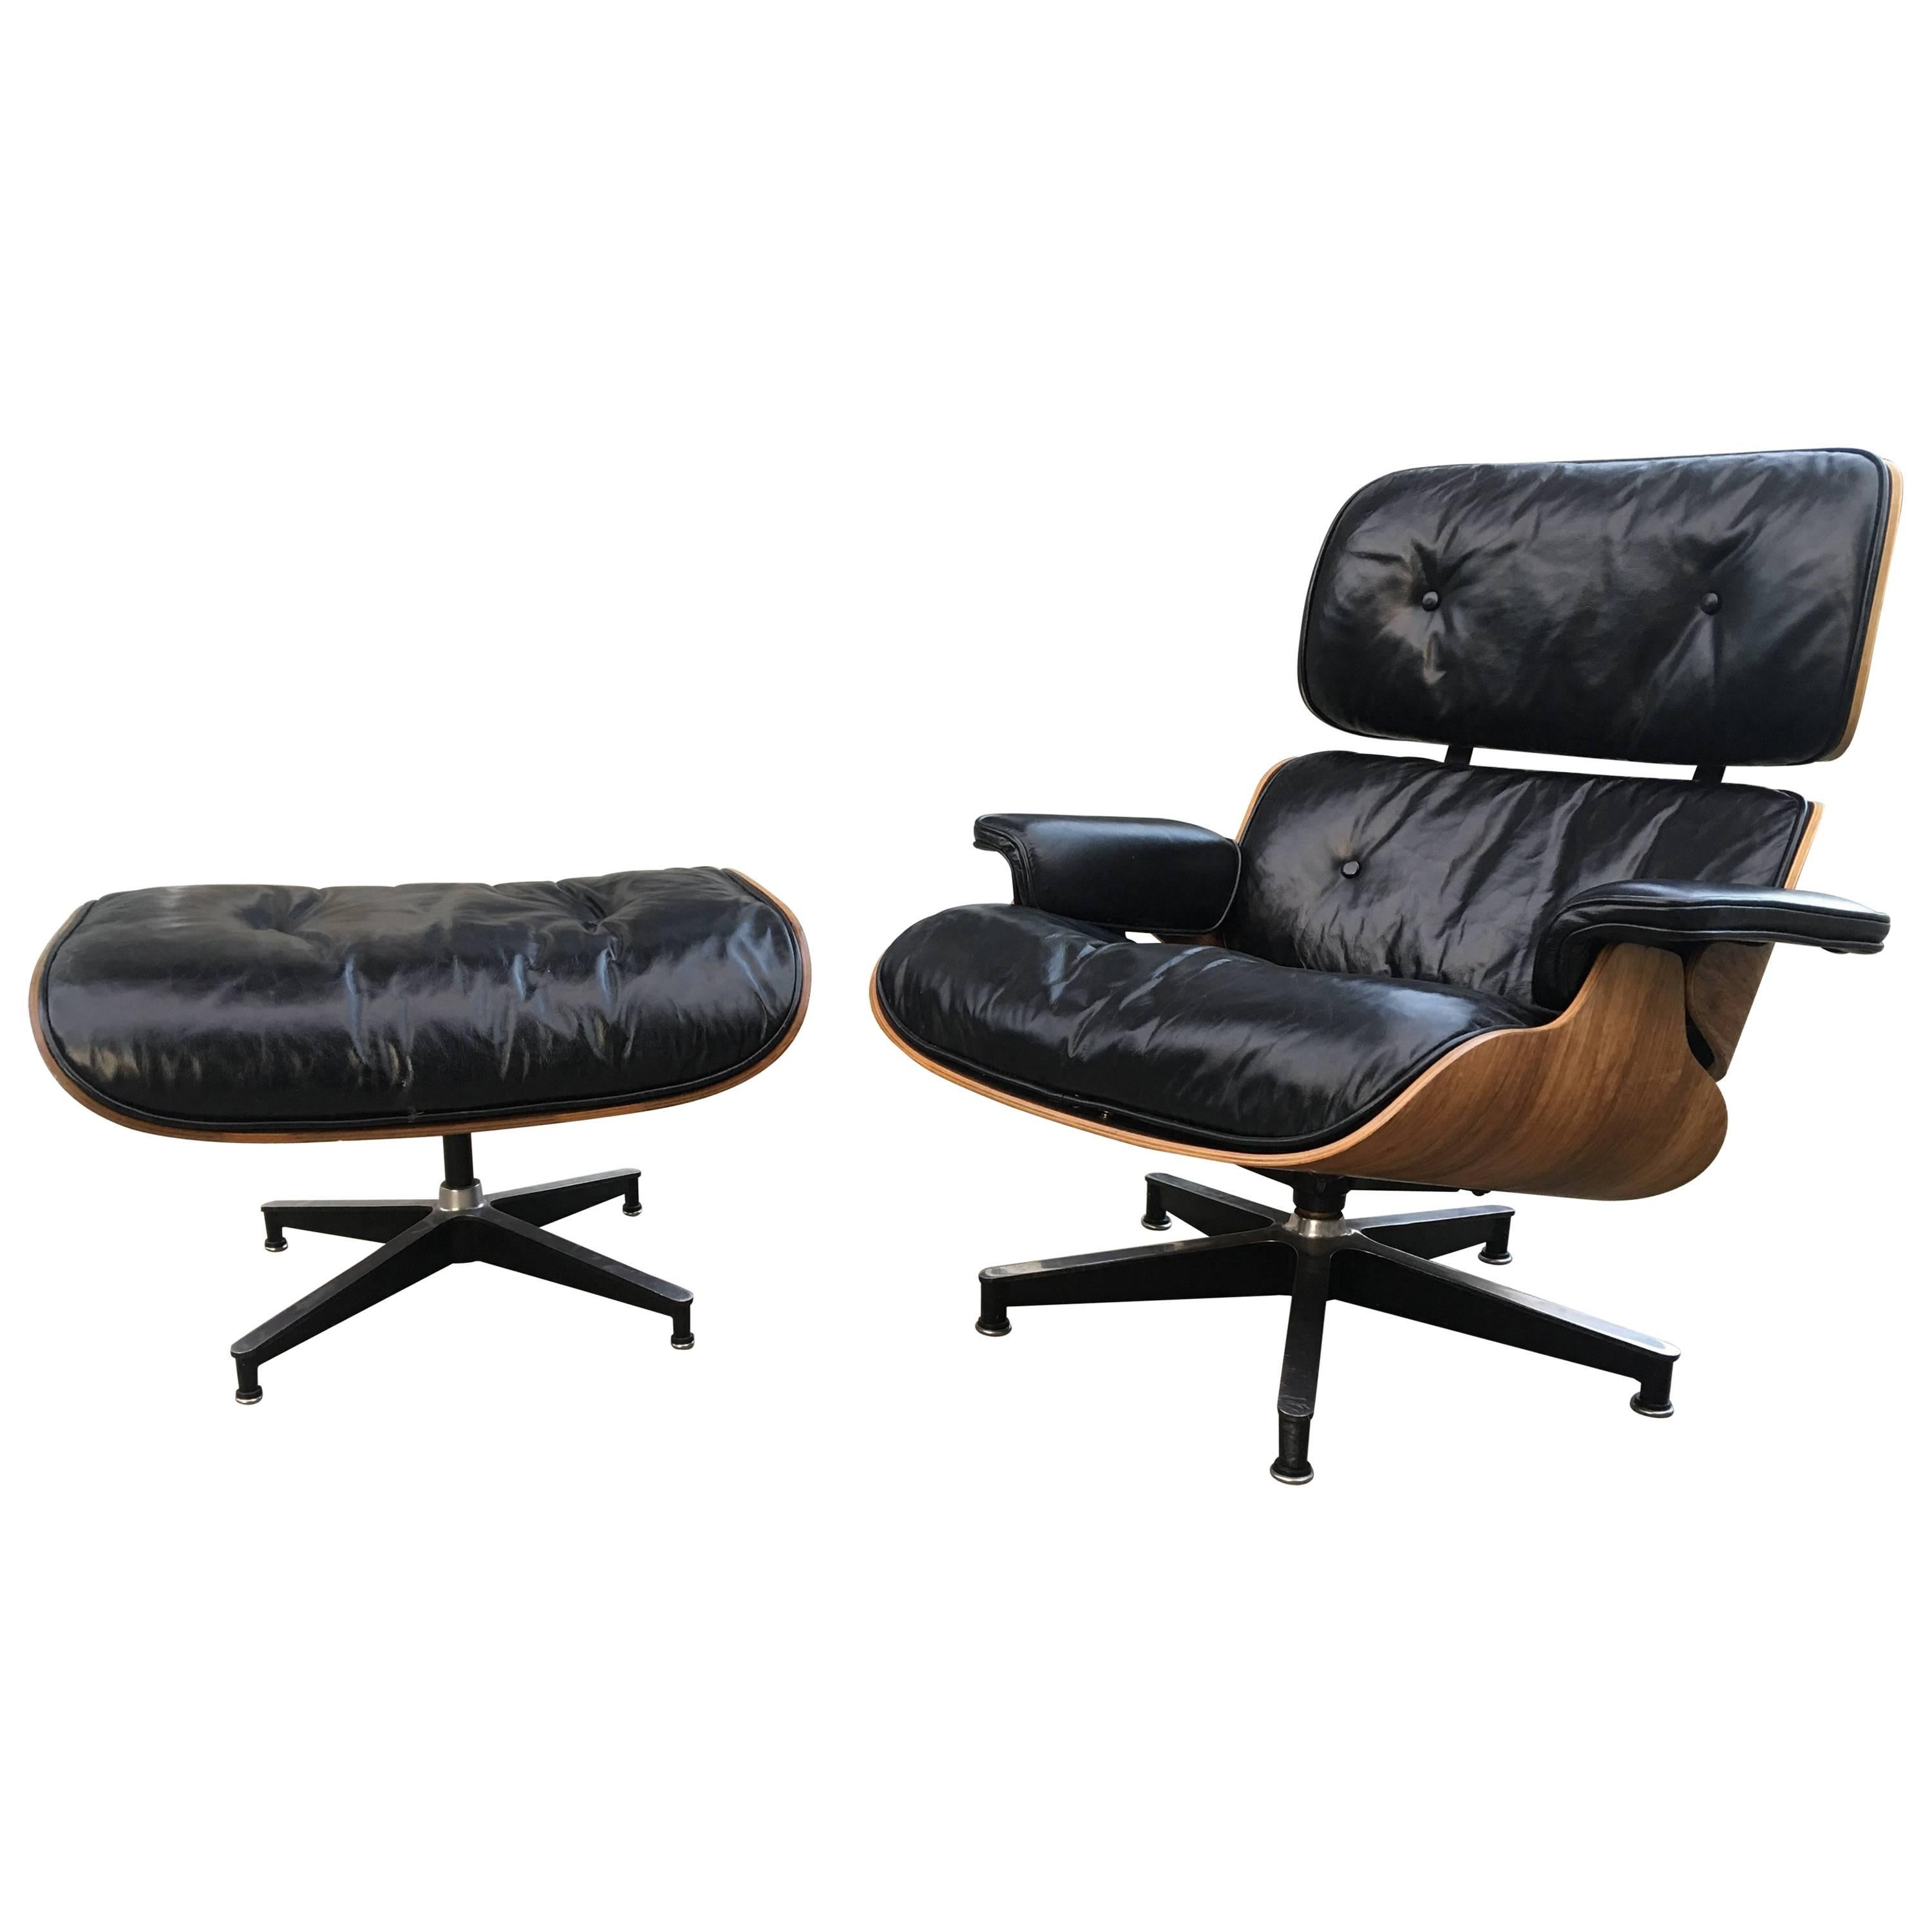 Early 1960s Herman Miller Eames Lounge Chair And Ottoman With Down Cushions  For Sale